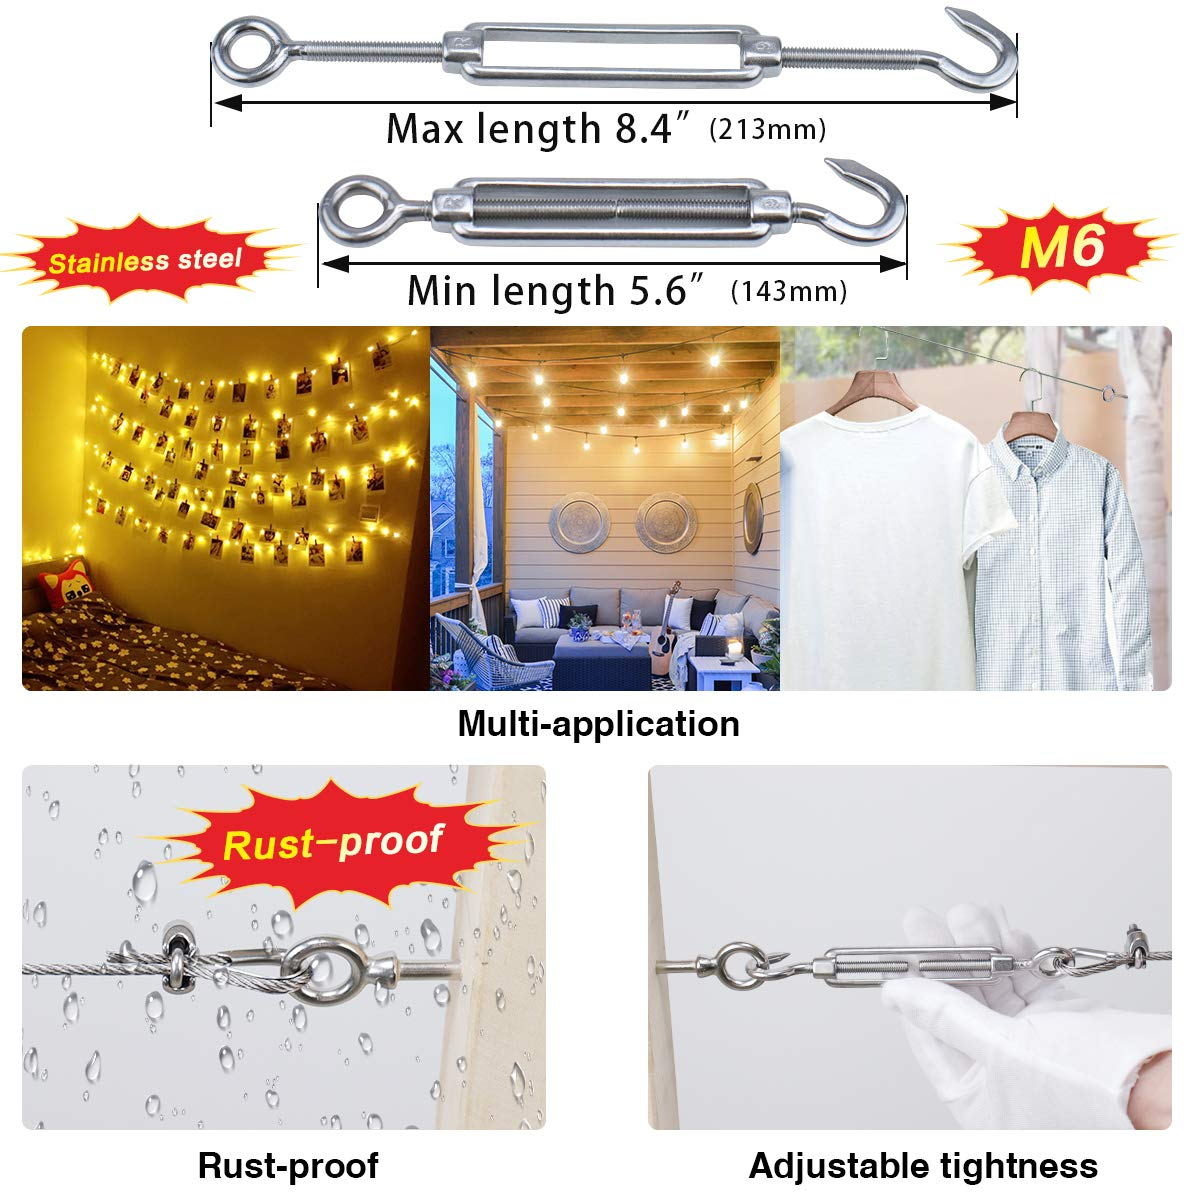 Muzata 1//8 Cable Railing Kit 4PACK,Inluded M6 Stainless Steel Hook Eye Turnbuckle Tension 4Pcs,M3 1//8 Wire Rope Cable Clip Clamp 8Pcs,M3 Stainless Steel Thimble 8Pcs